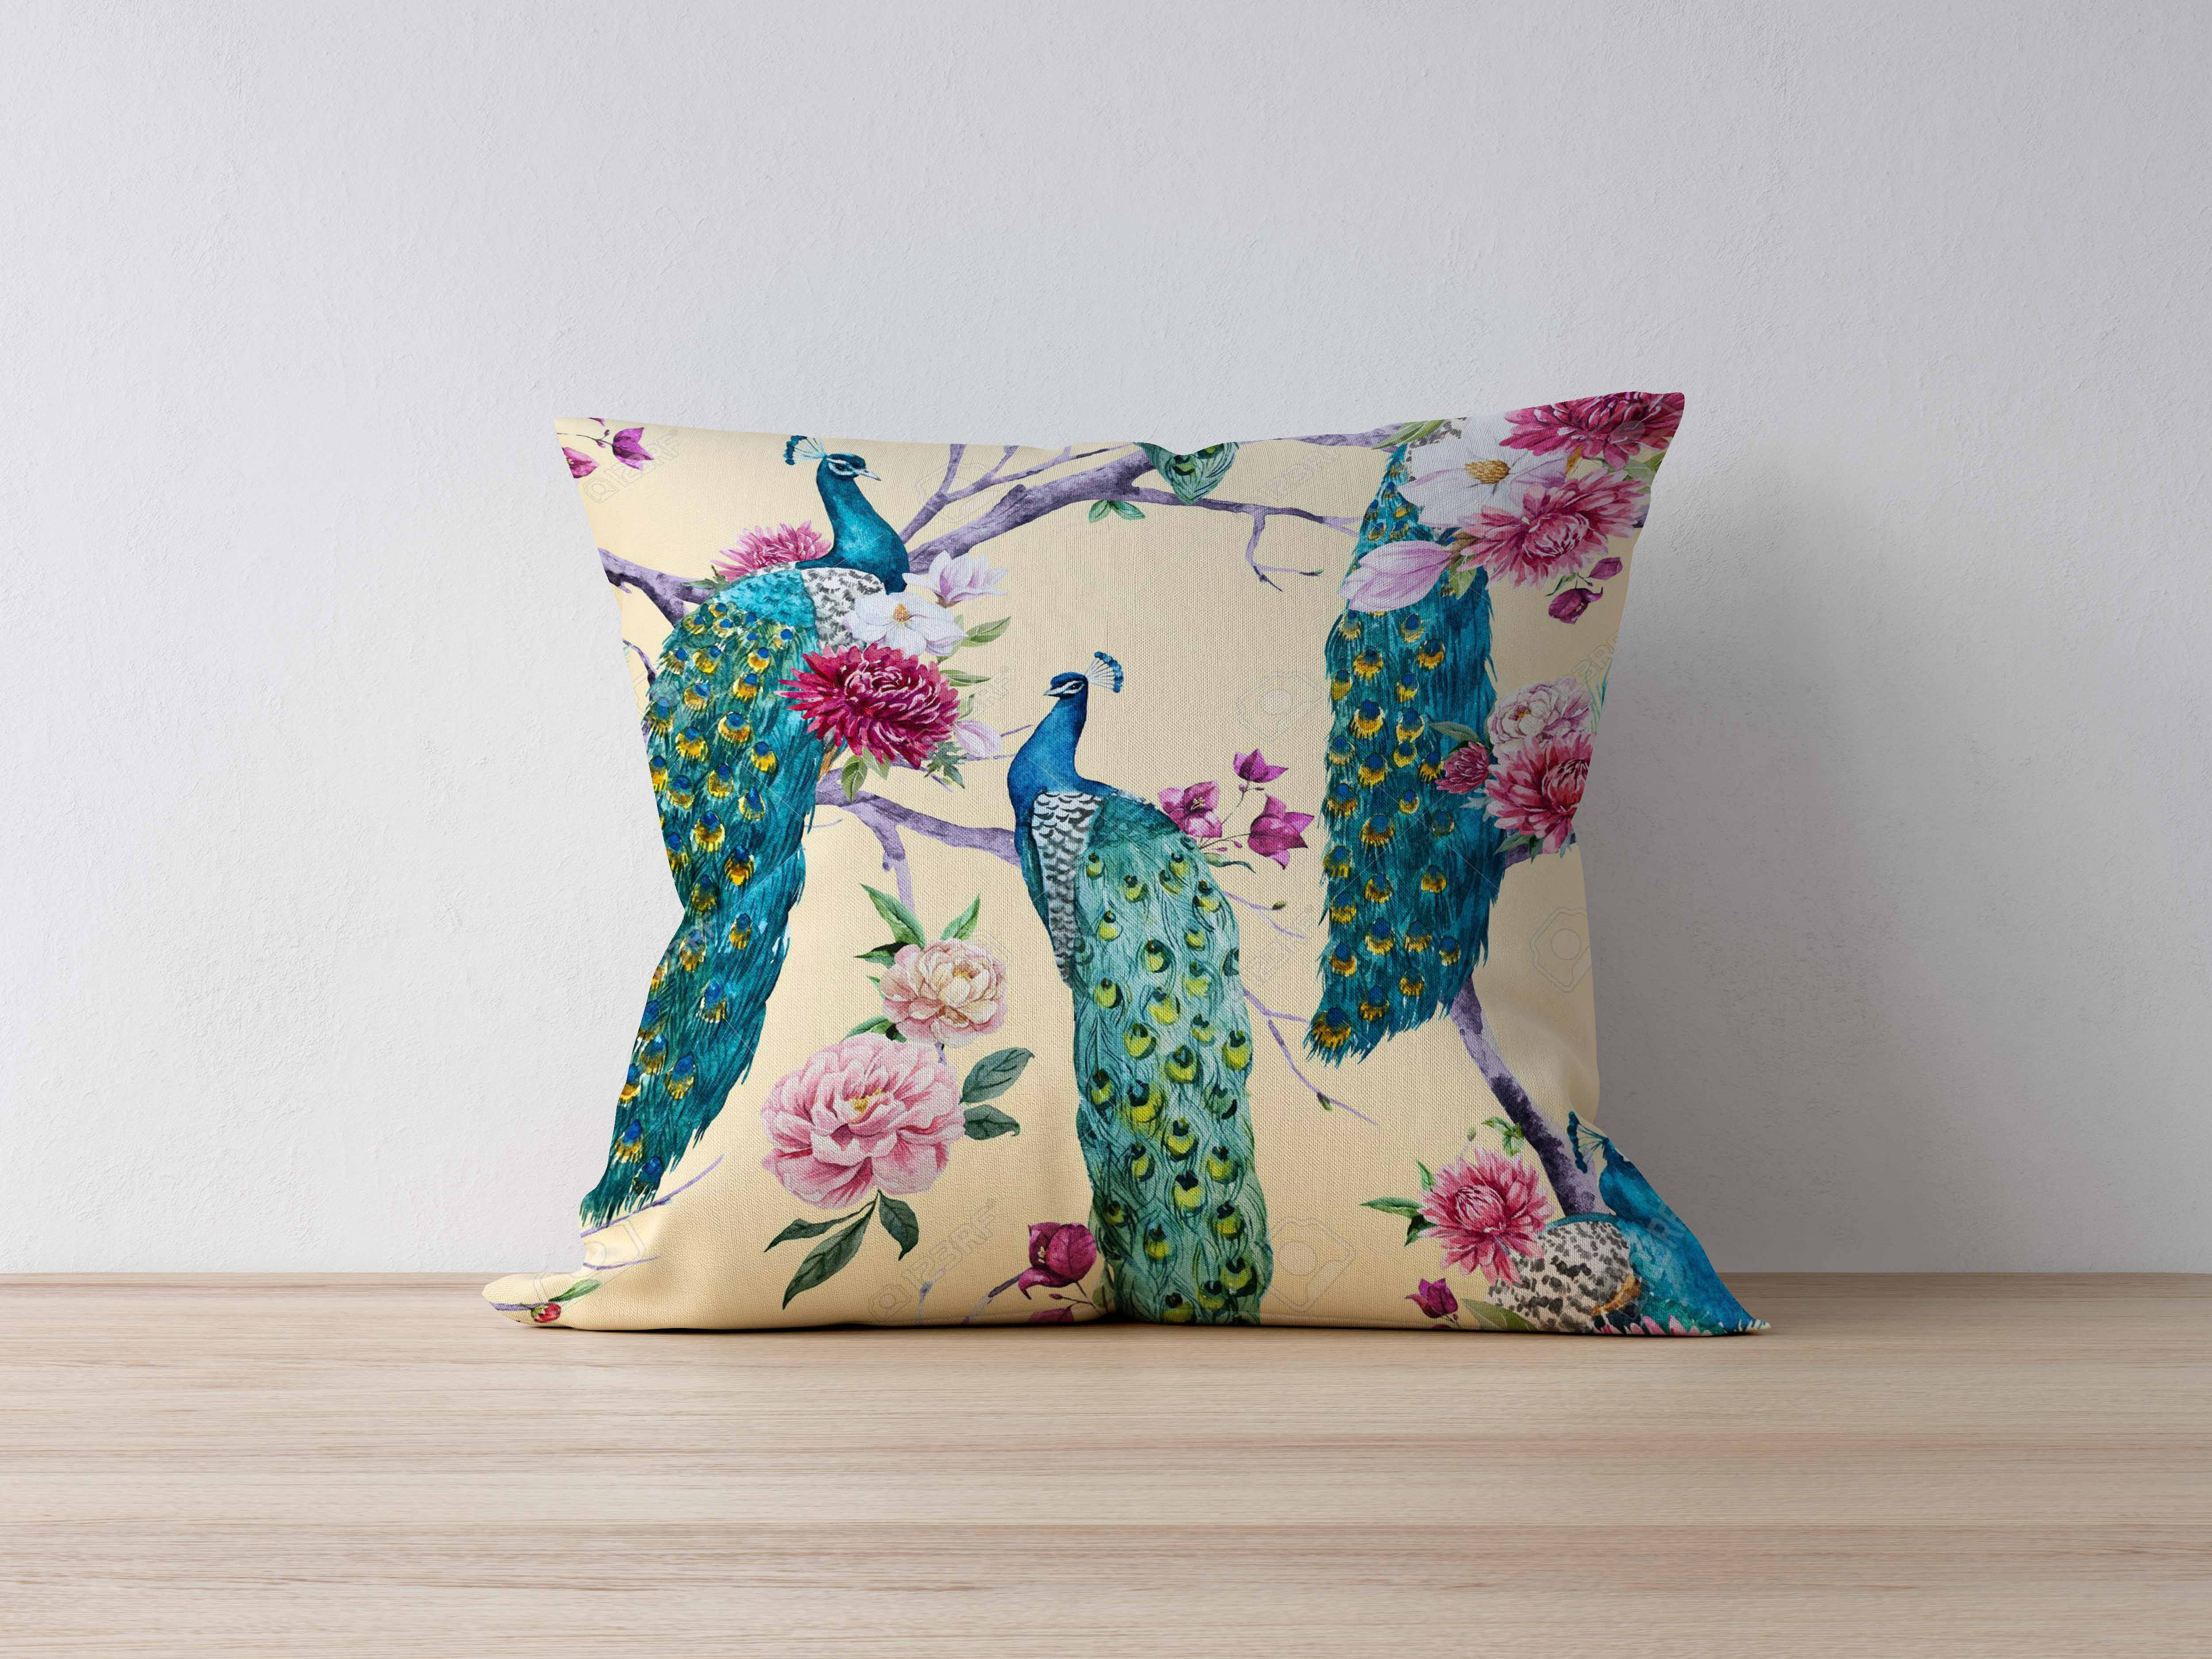 I will design creative pillow cover